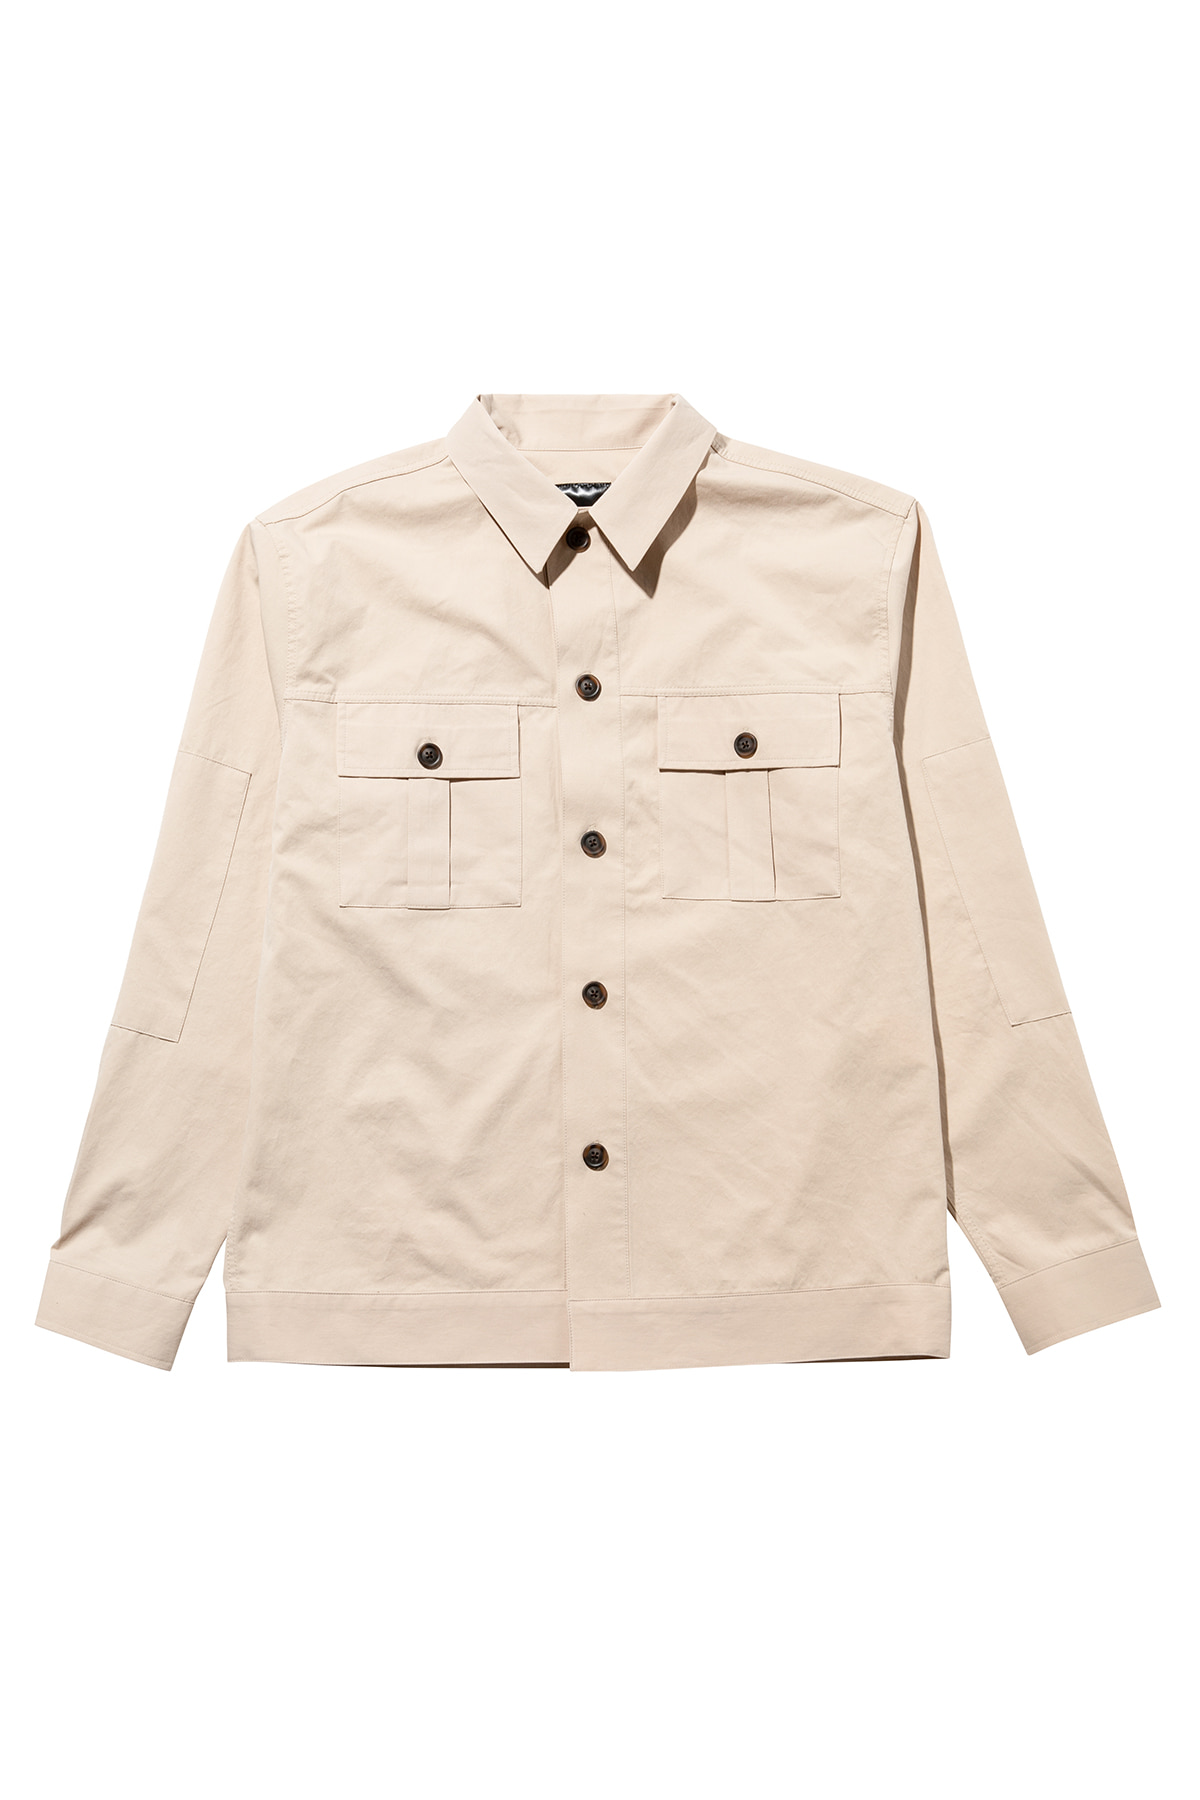 페이탈리즘 #jp36 Fatigue pocket shirt jacket (beige)